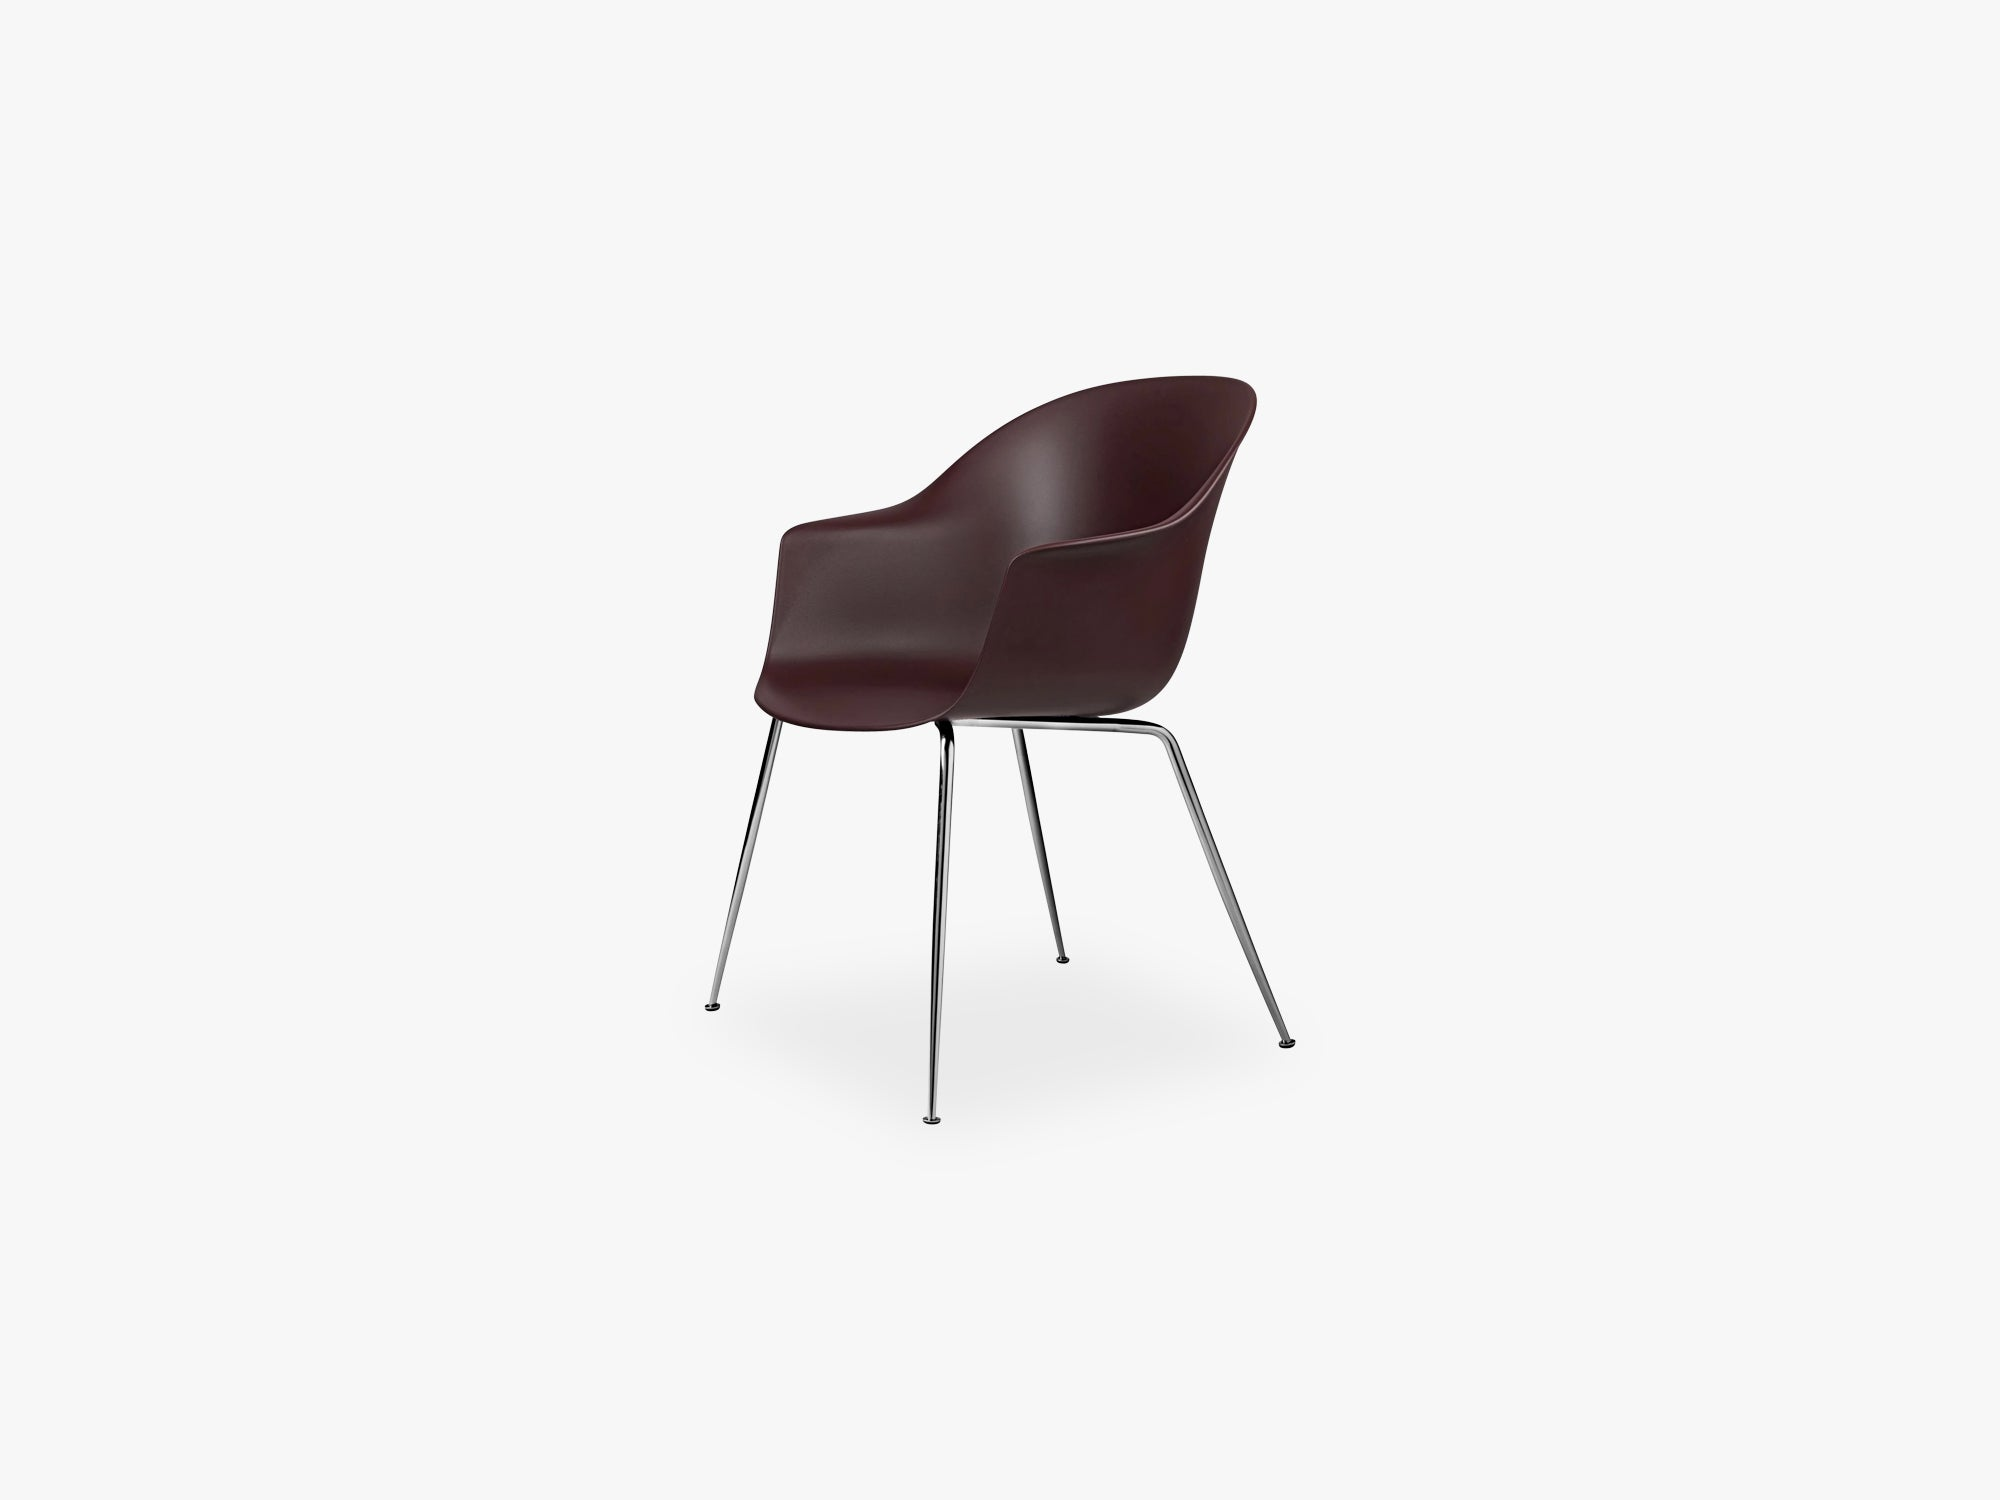 Bat Dining Chair - Skal m Conic base - Chrome, Dark Pink fra GUBI